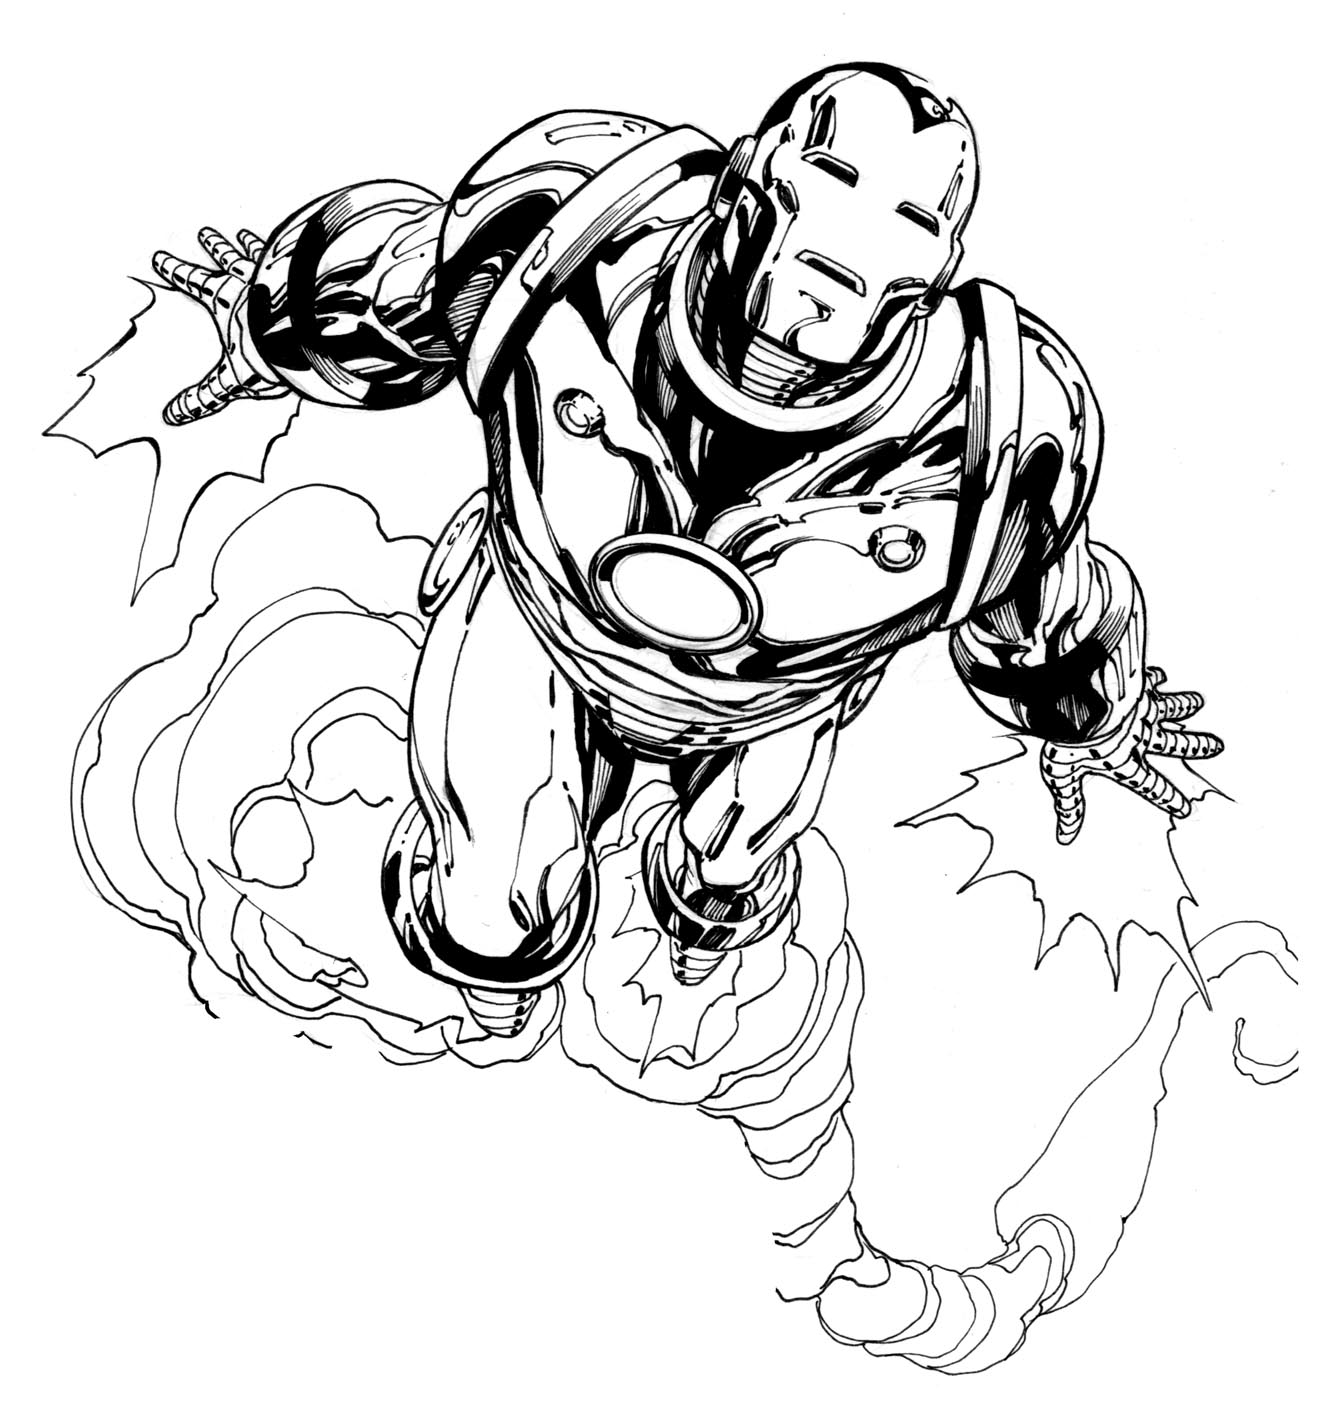 avengers april iron man inks robert atkins art